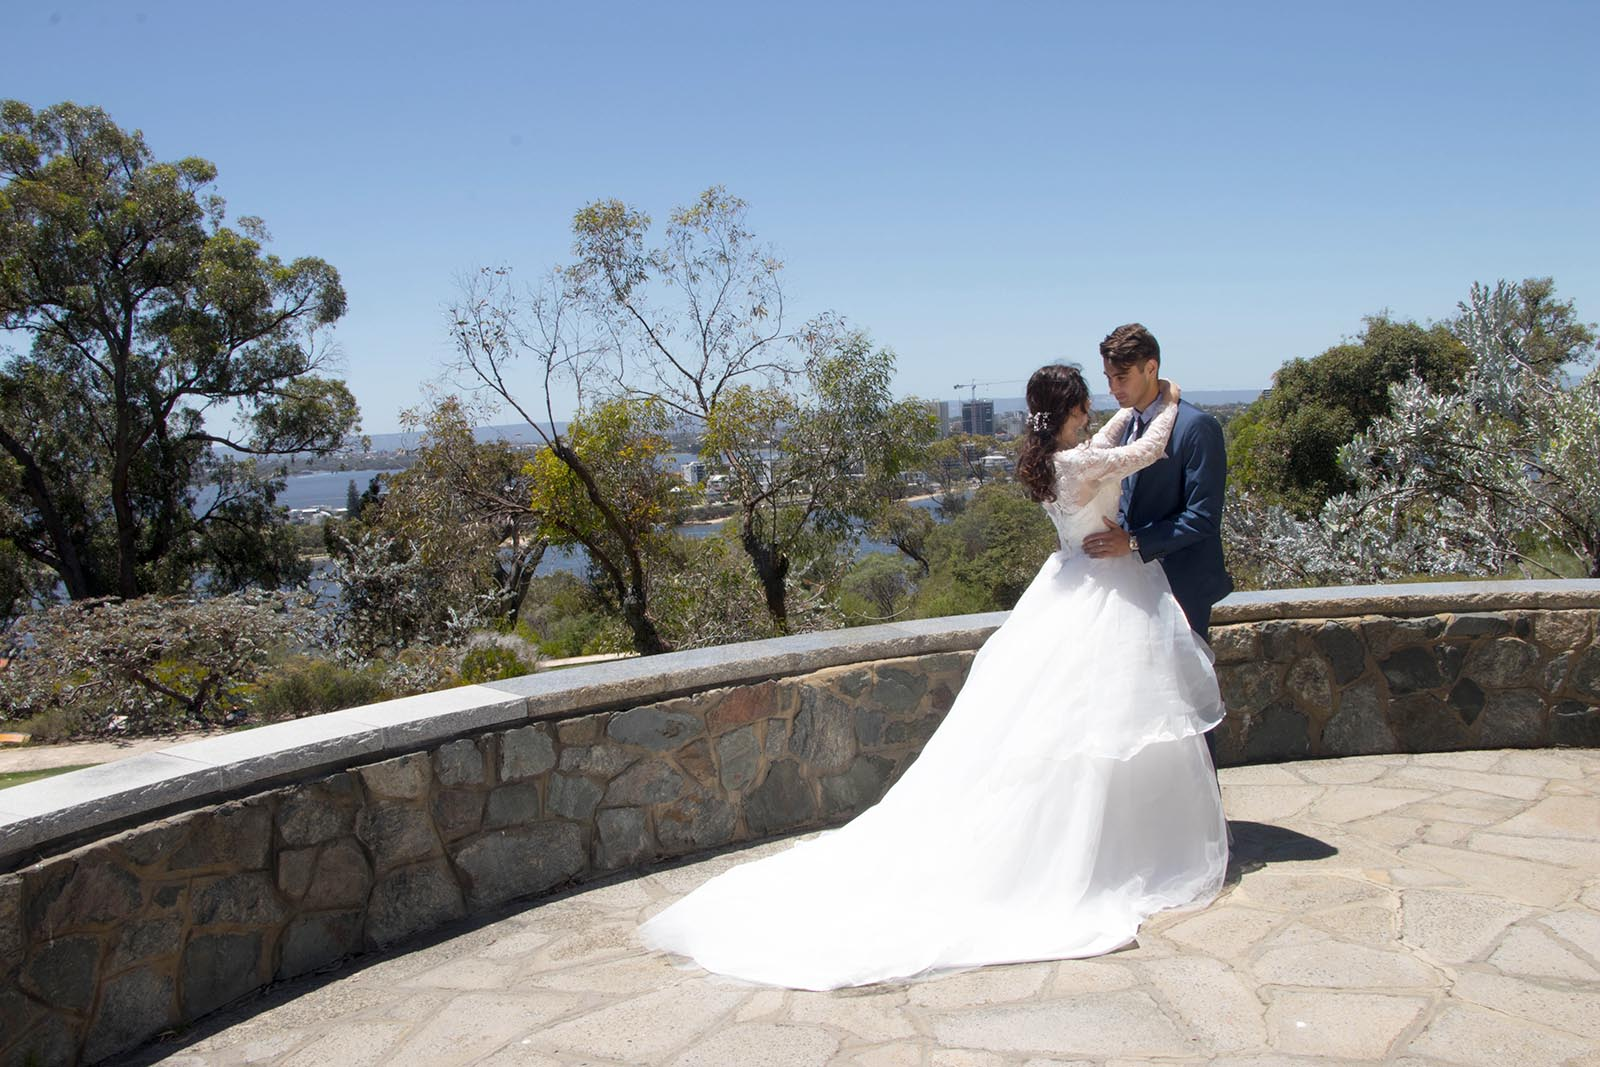 Bride and groom embracing outdoors